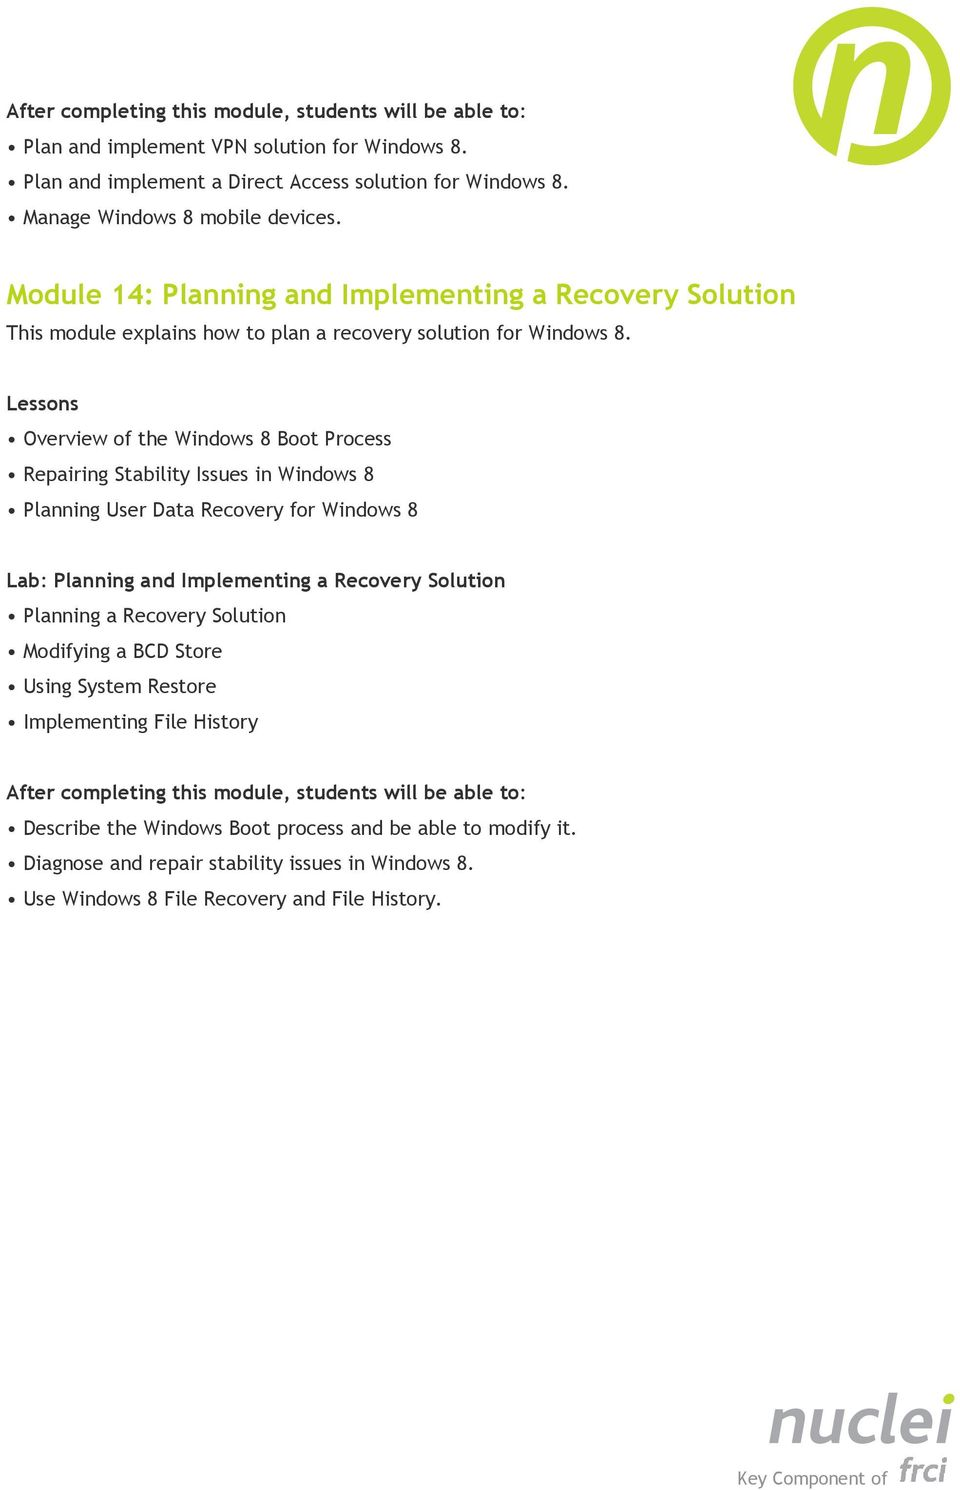 Overview of the Windows 8 Boot Process Repairing Stability Issues in Windows 8 Planning User Data Recovery for Windows 8 Lab: Planning and Implementing a Recovery Solution